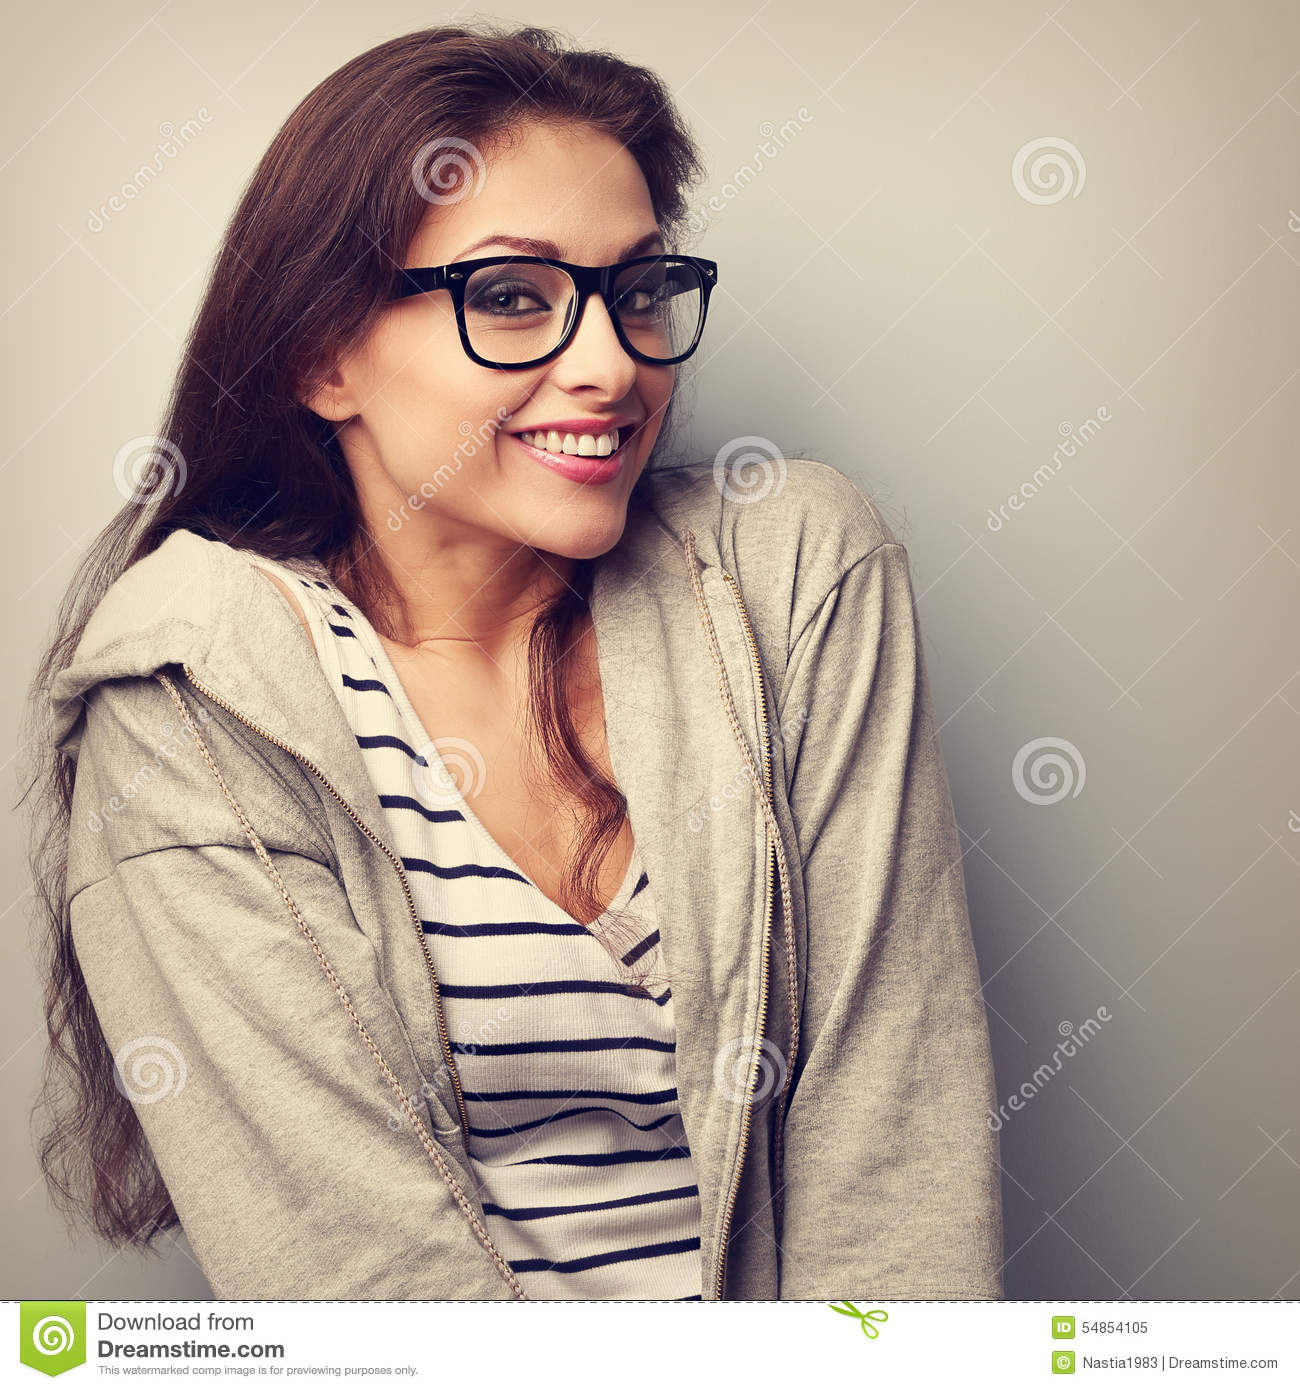 Fun beautiful woman in glasses with happy smile. Vintage portrai